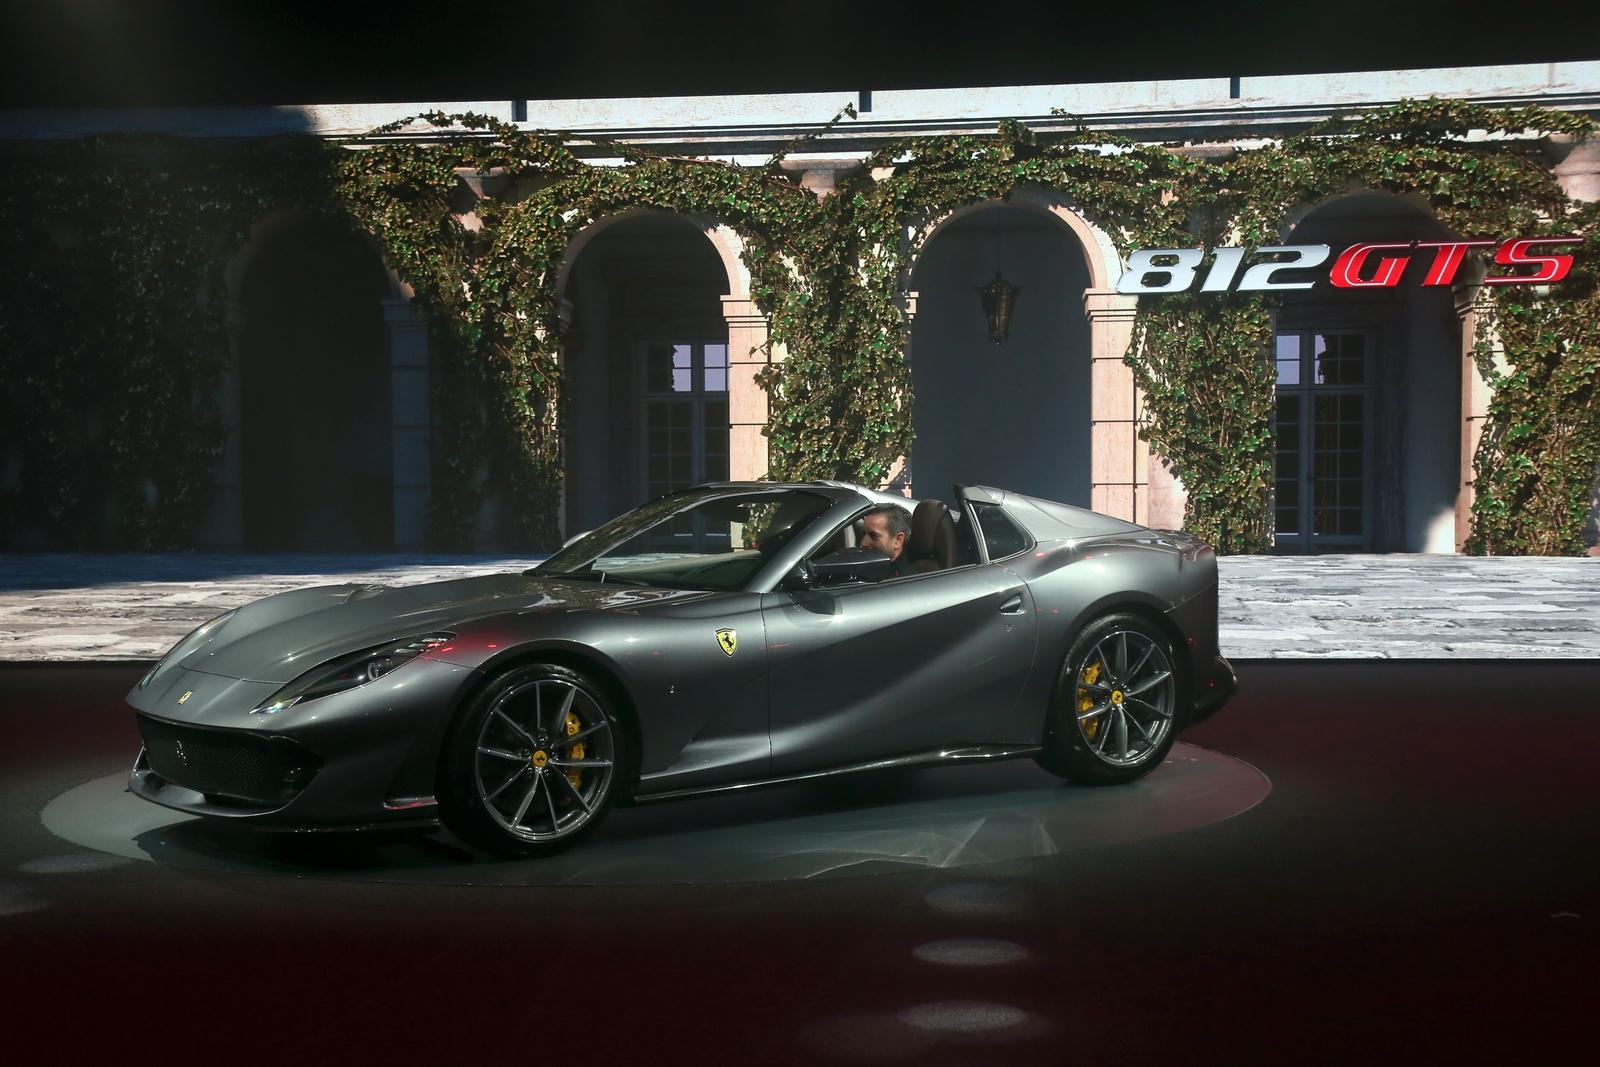 Front Wheel Drive Cars >> Cool Quirks About The New Ferrari 812 GTS | Top Speed